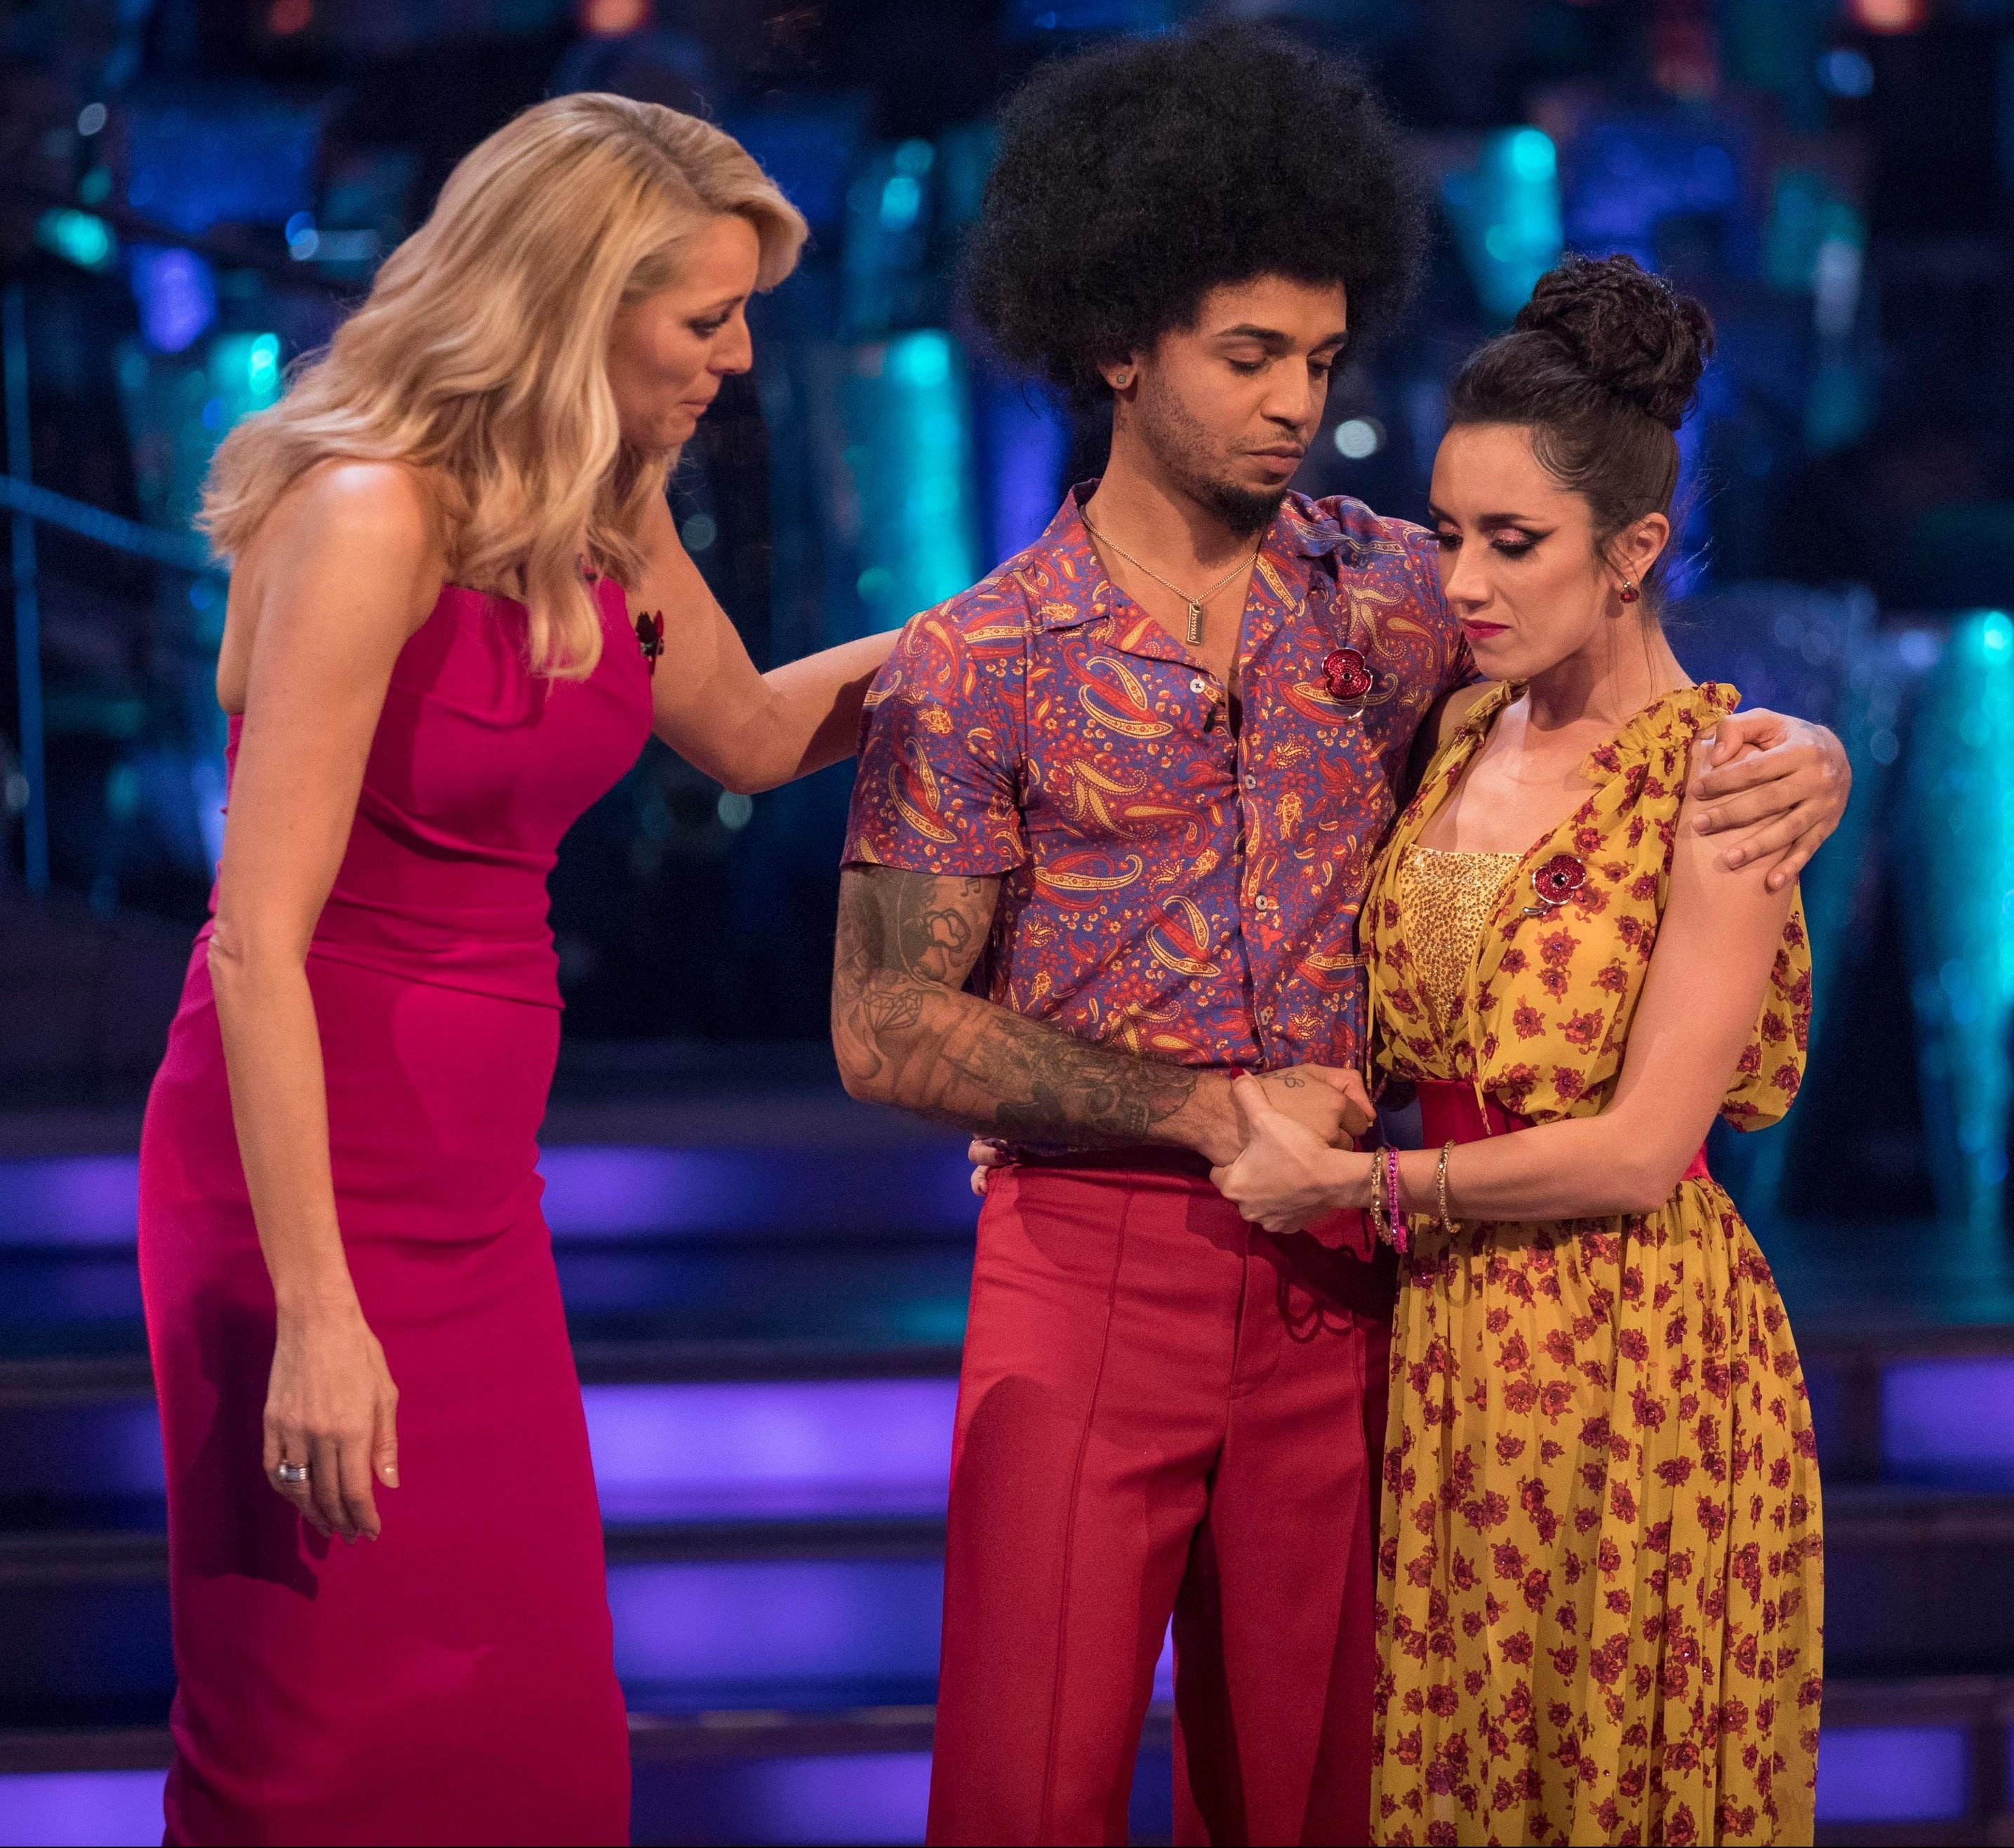 Strictly Come Dancing's Aston Merrygold slams judge Craig Revel Horwood over low scores and still blames him for axe